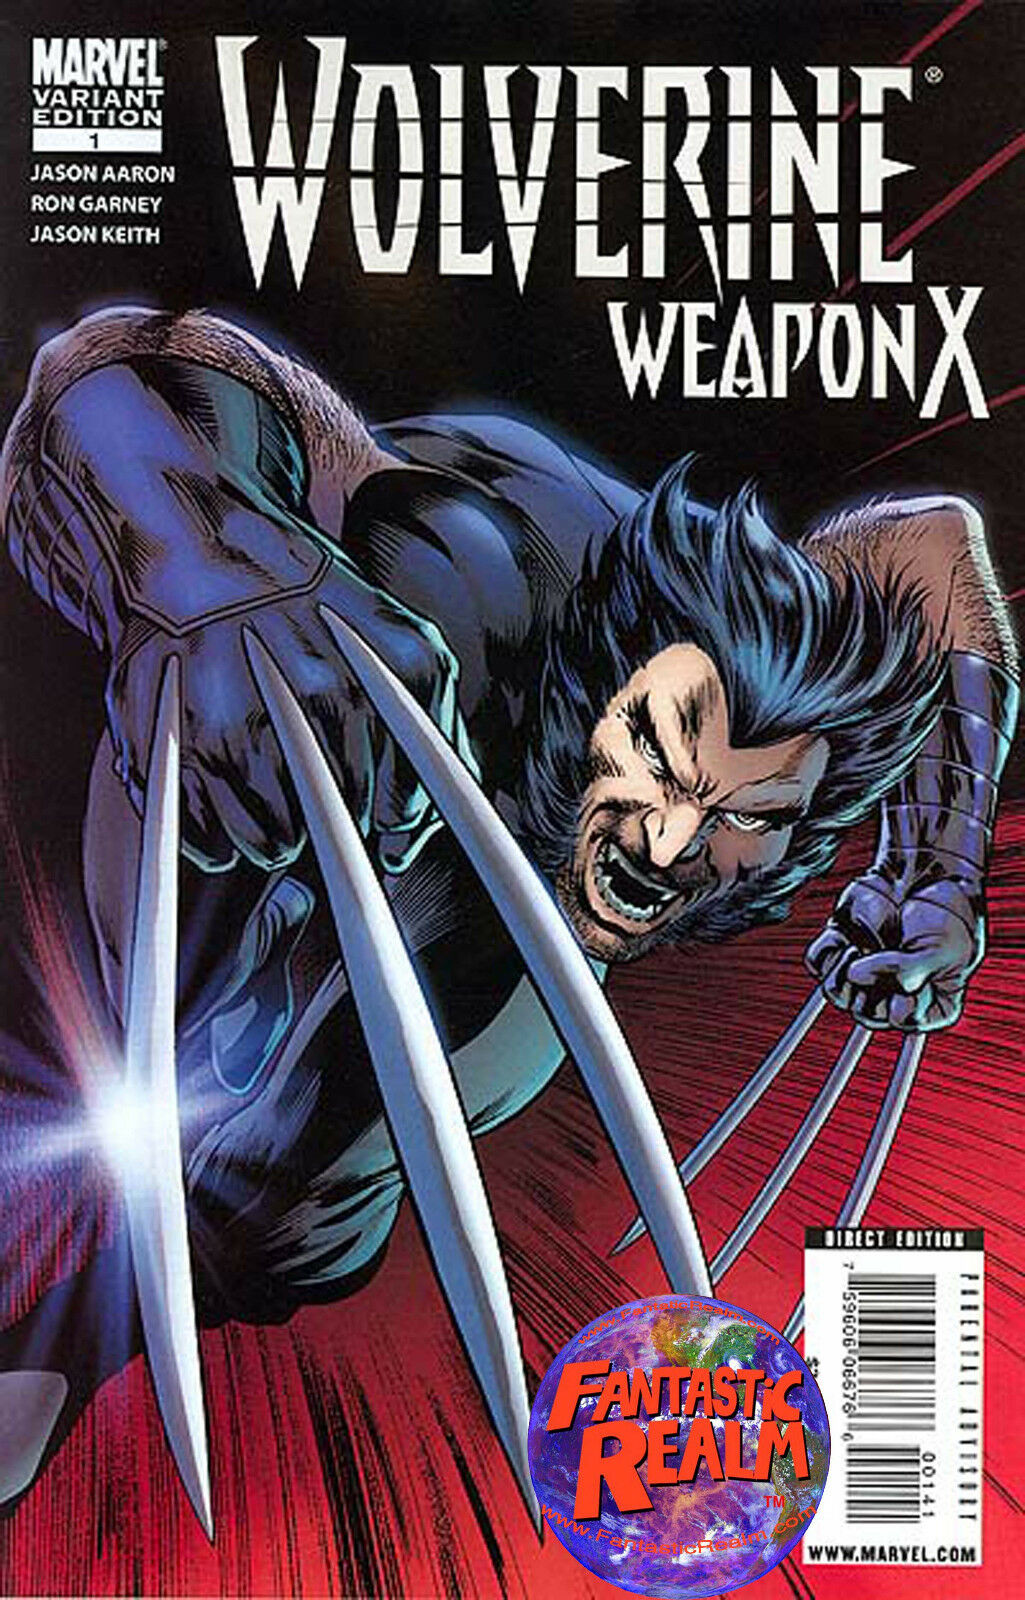 WOLVERINE WEAPON X #1 VARIANT EDITION (2009) ALAN DAVIS JASON AARON COVER